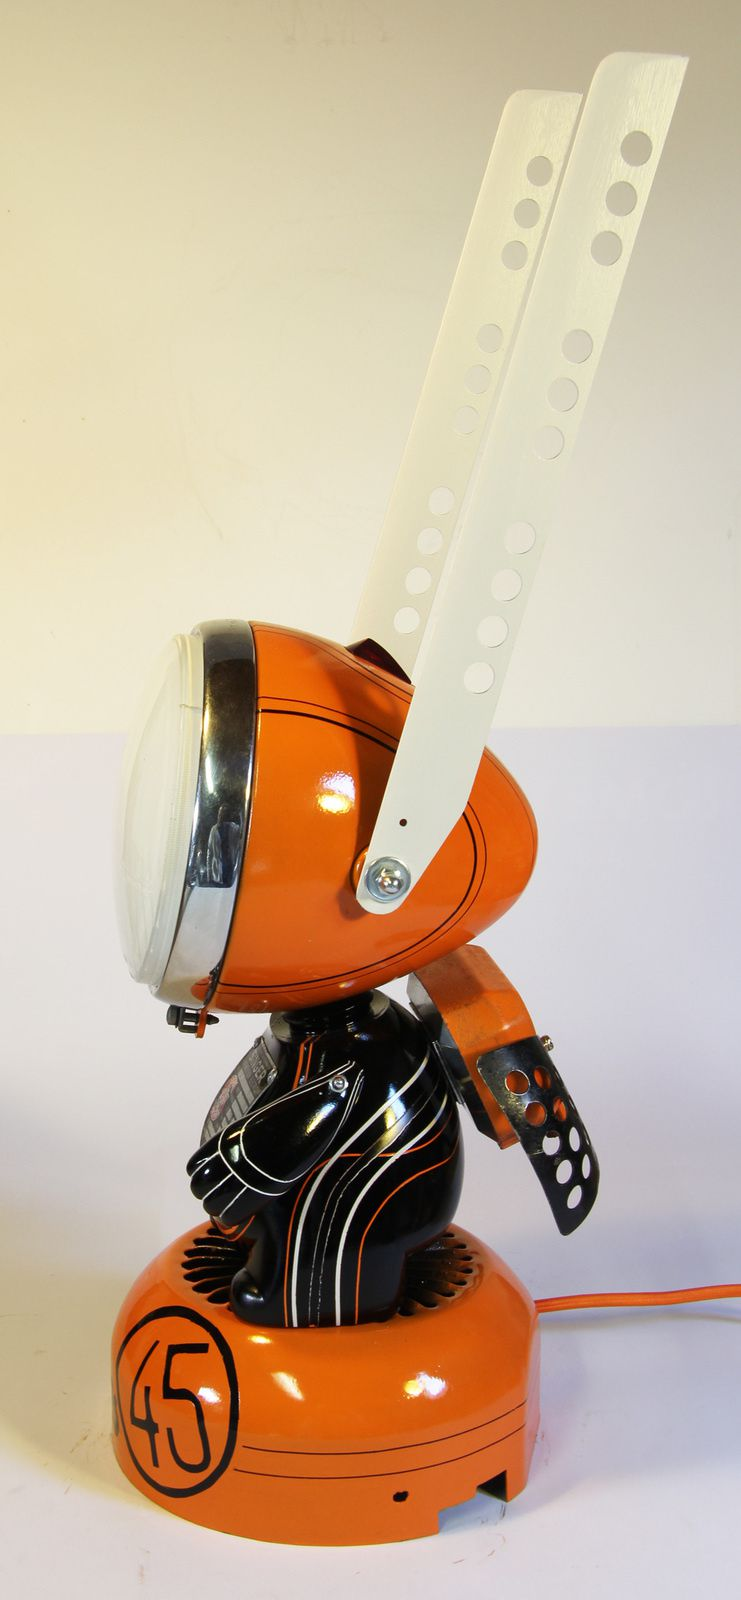 Lamps toyz n 45 singer lampstoyz by mister orange for Machine a coudre unic